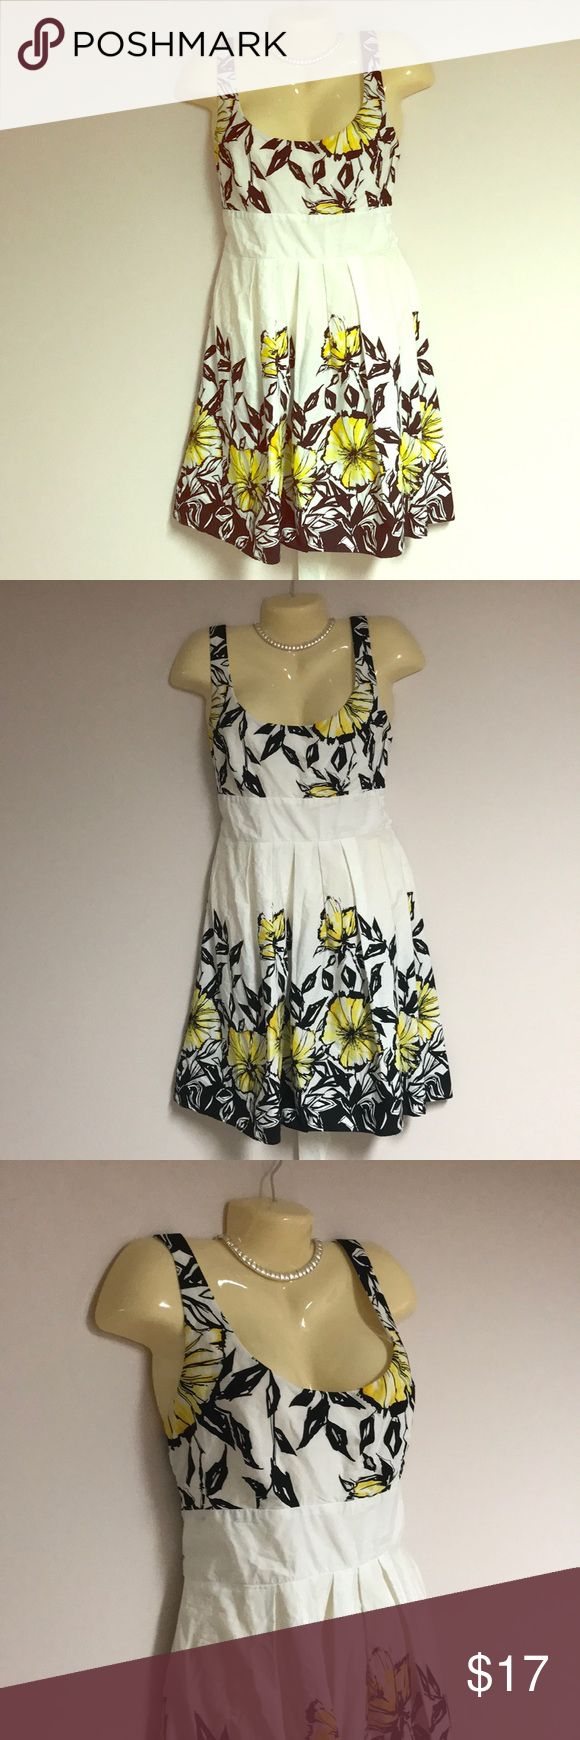 B. Smart Gorgeous Summer Dress Sz 12 B. Smart summer dress size 12. You can't help but think of summer when you see this dress. Crisp white 100% cotton with bright yellow flowers and butterflies.  Bust 38 waist 32 hips open length 38.   I love reasonable offers. Let's make a deal!!! B. Smart Dresses Midi